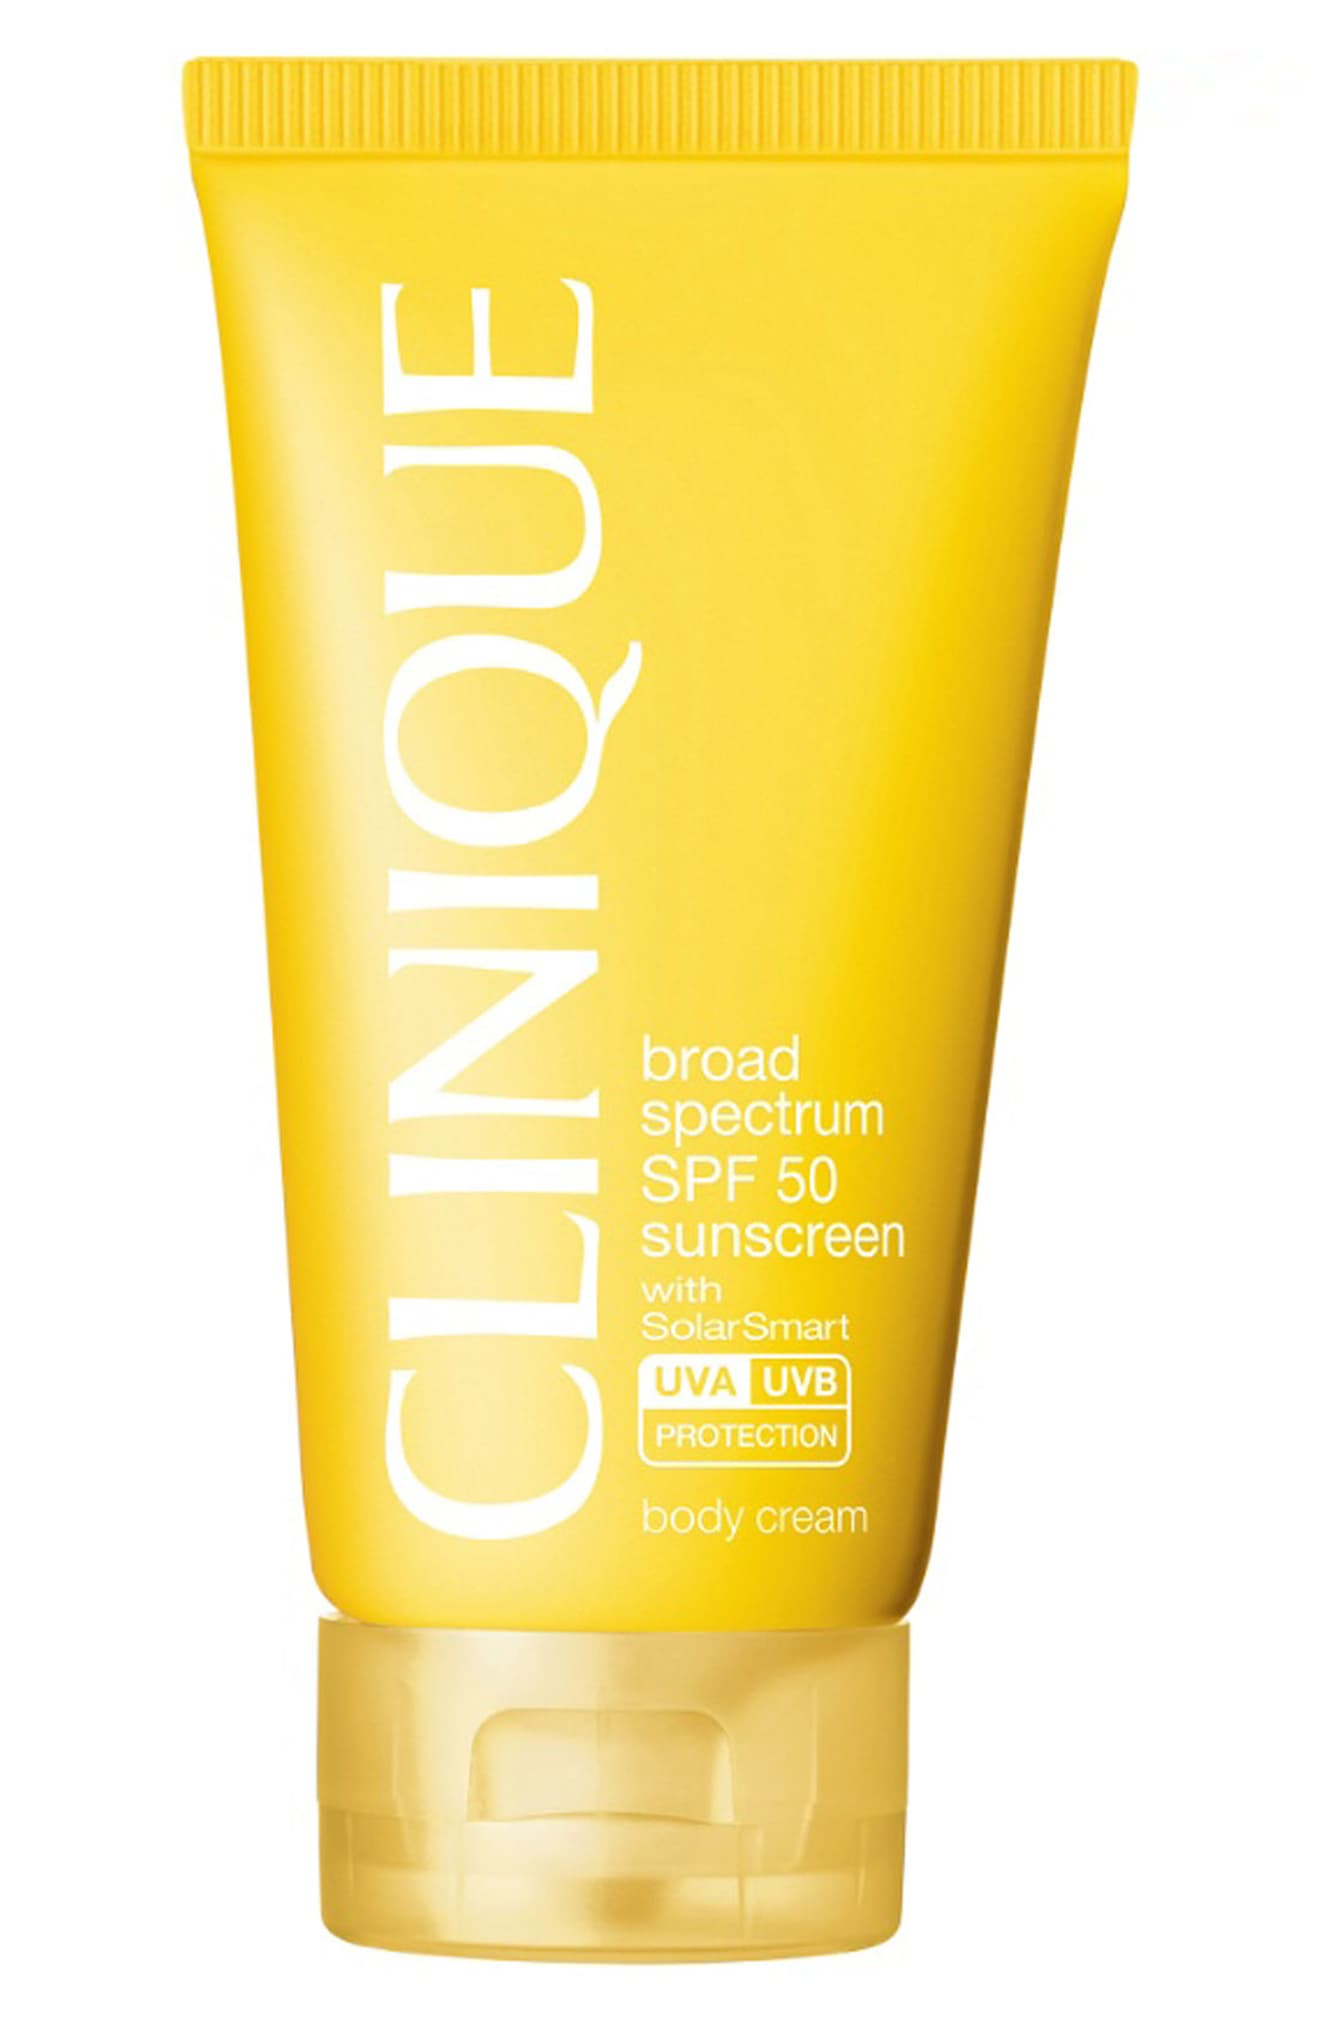 CLINIQUE Sun Broad Spectrum Spf 50 Body Cream